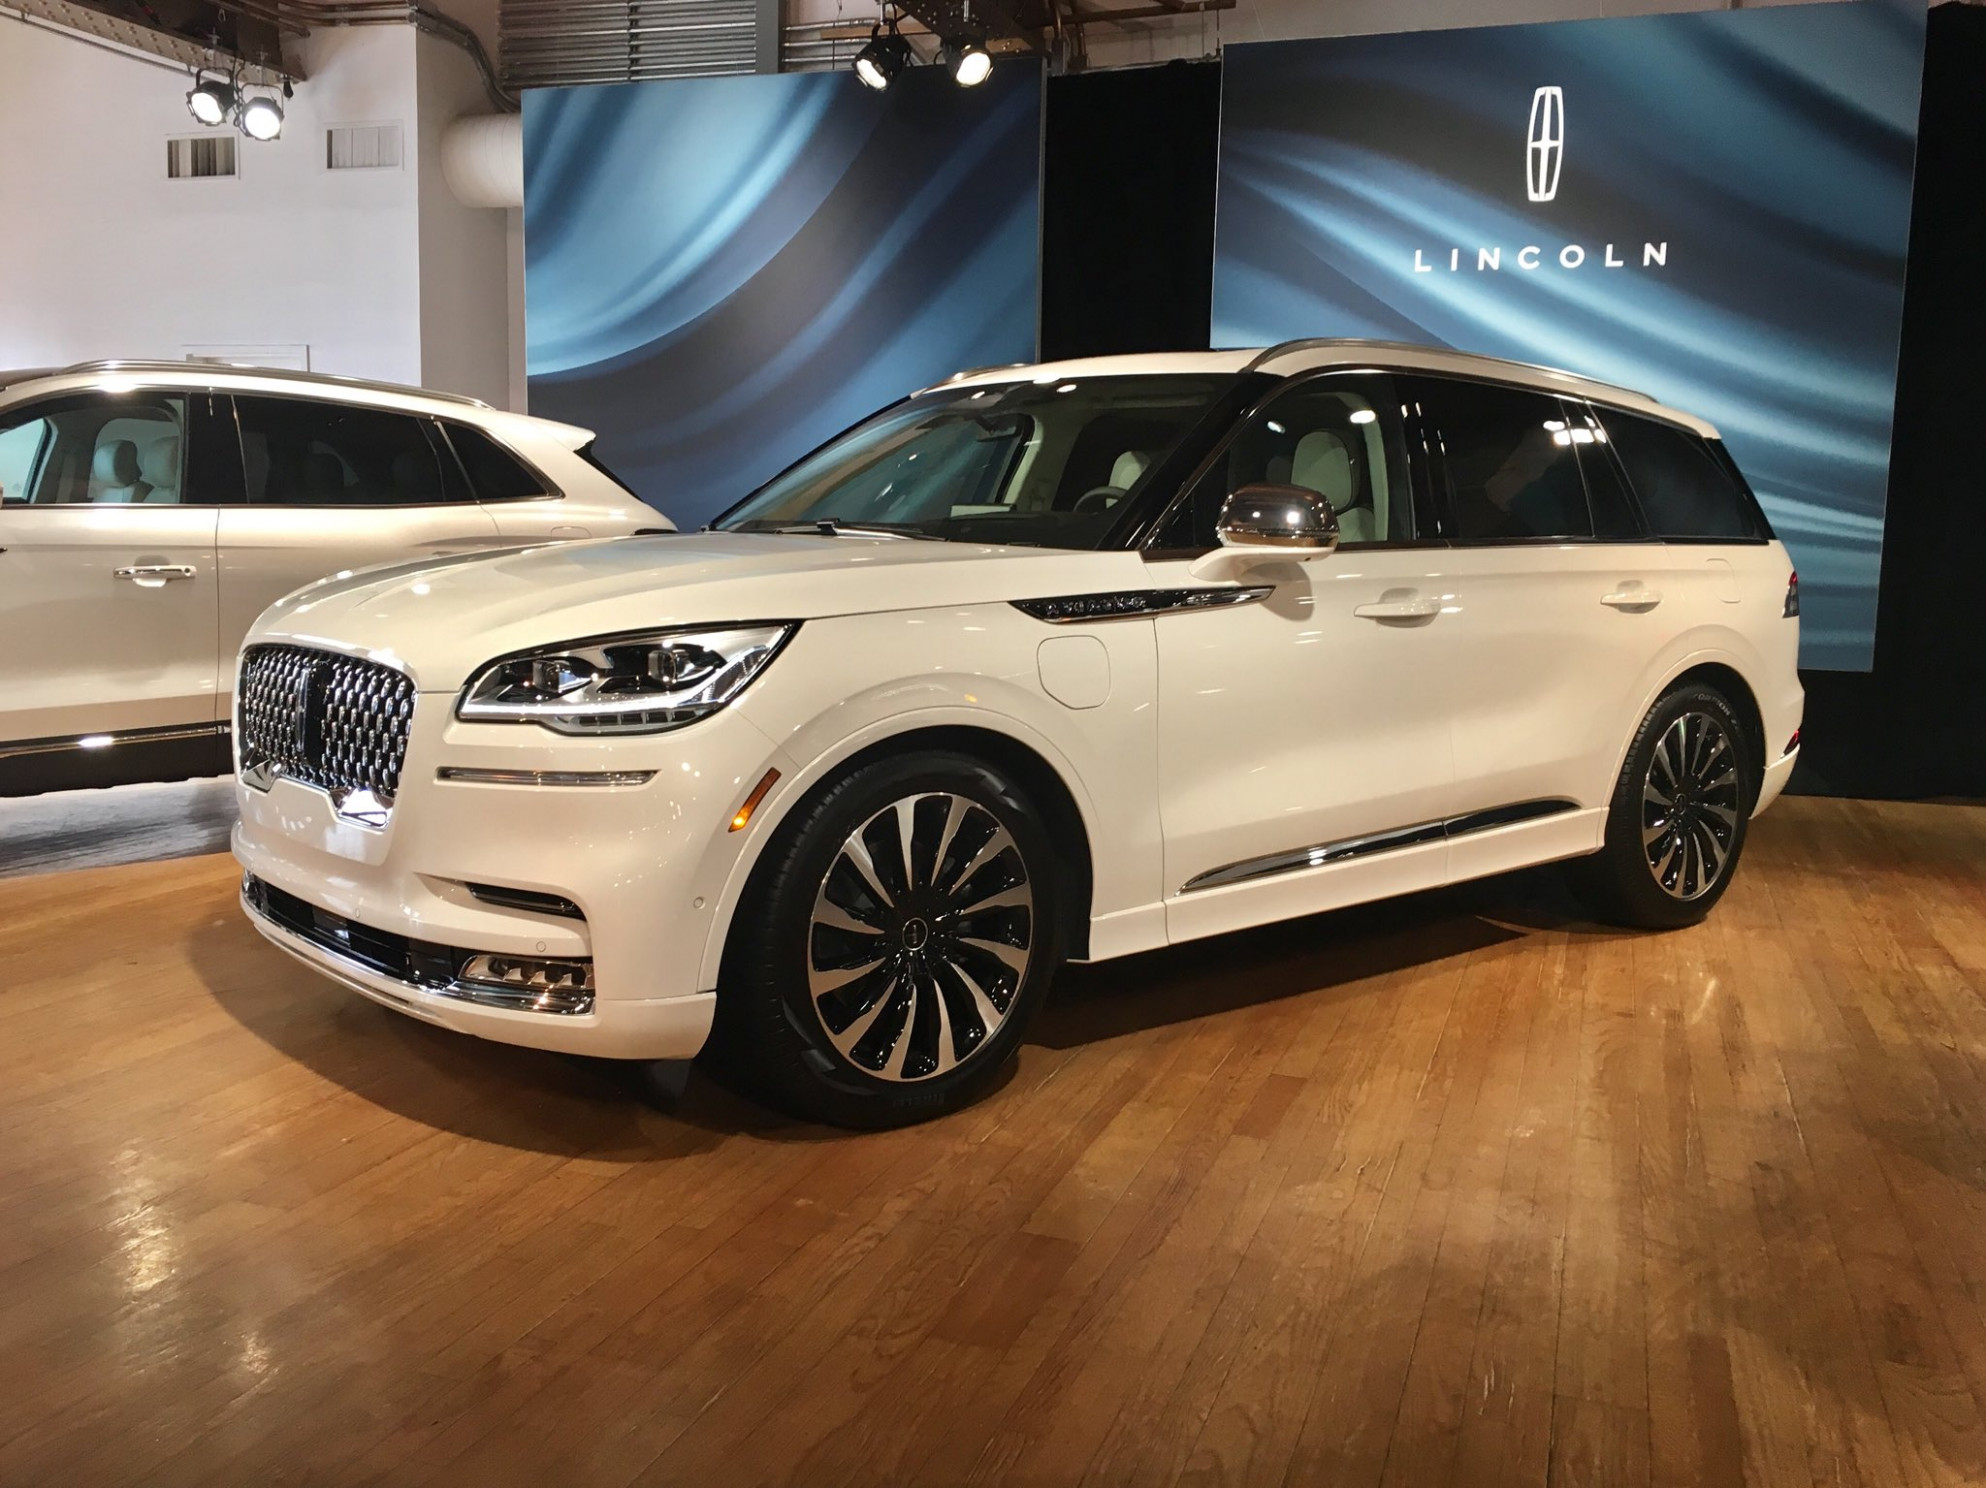 New Model and Performance 2022 Lincoln MKX